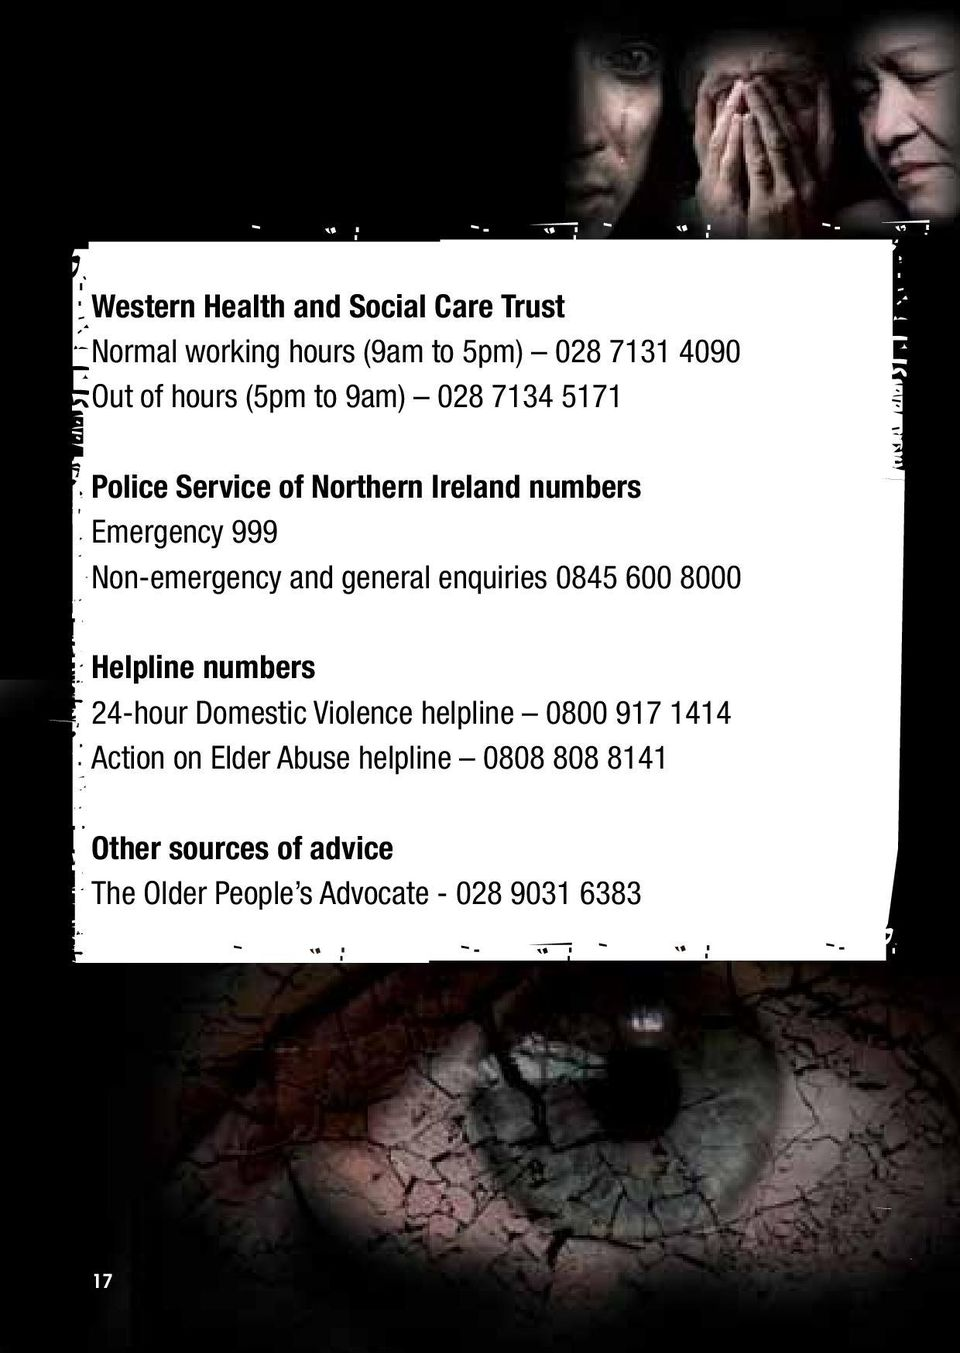 general enquiries 0845 600 8000 Helpline numbers 24-hour Domestic Violence helpline 0800 917 1414